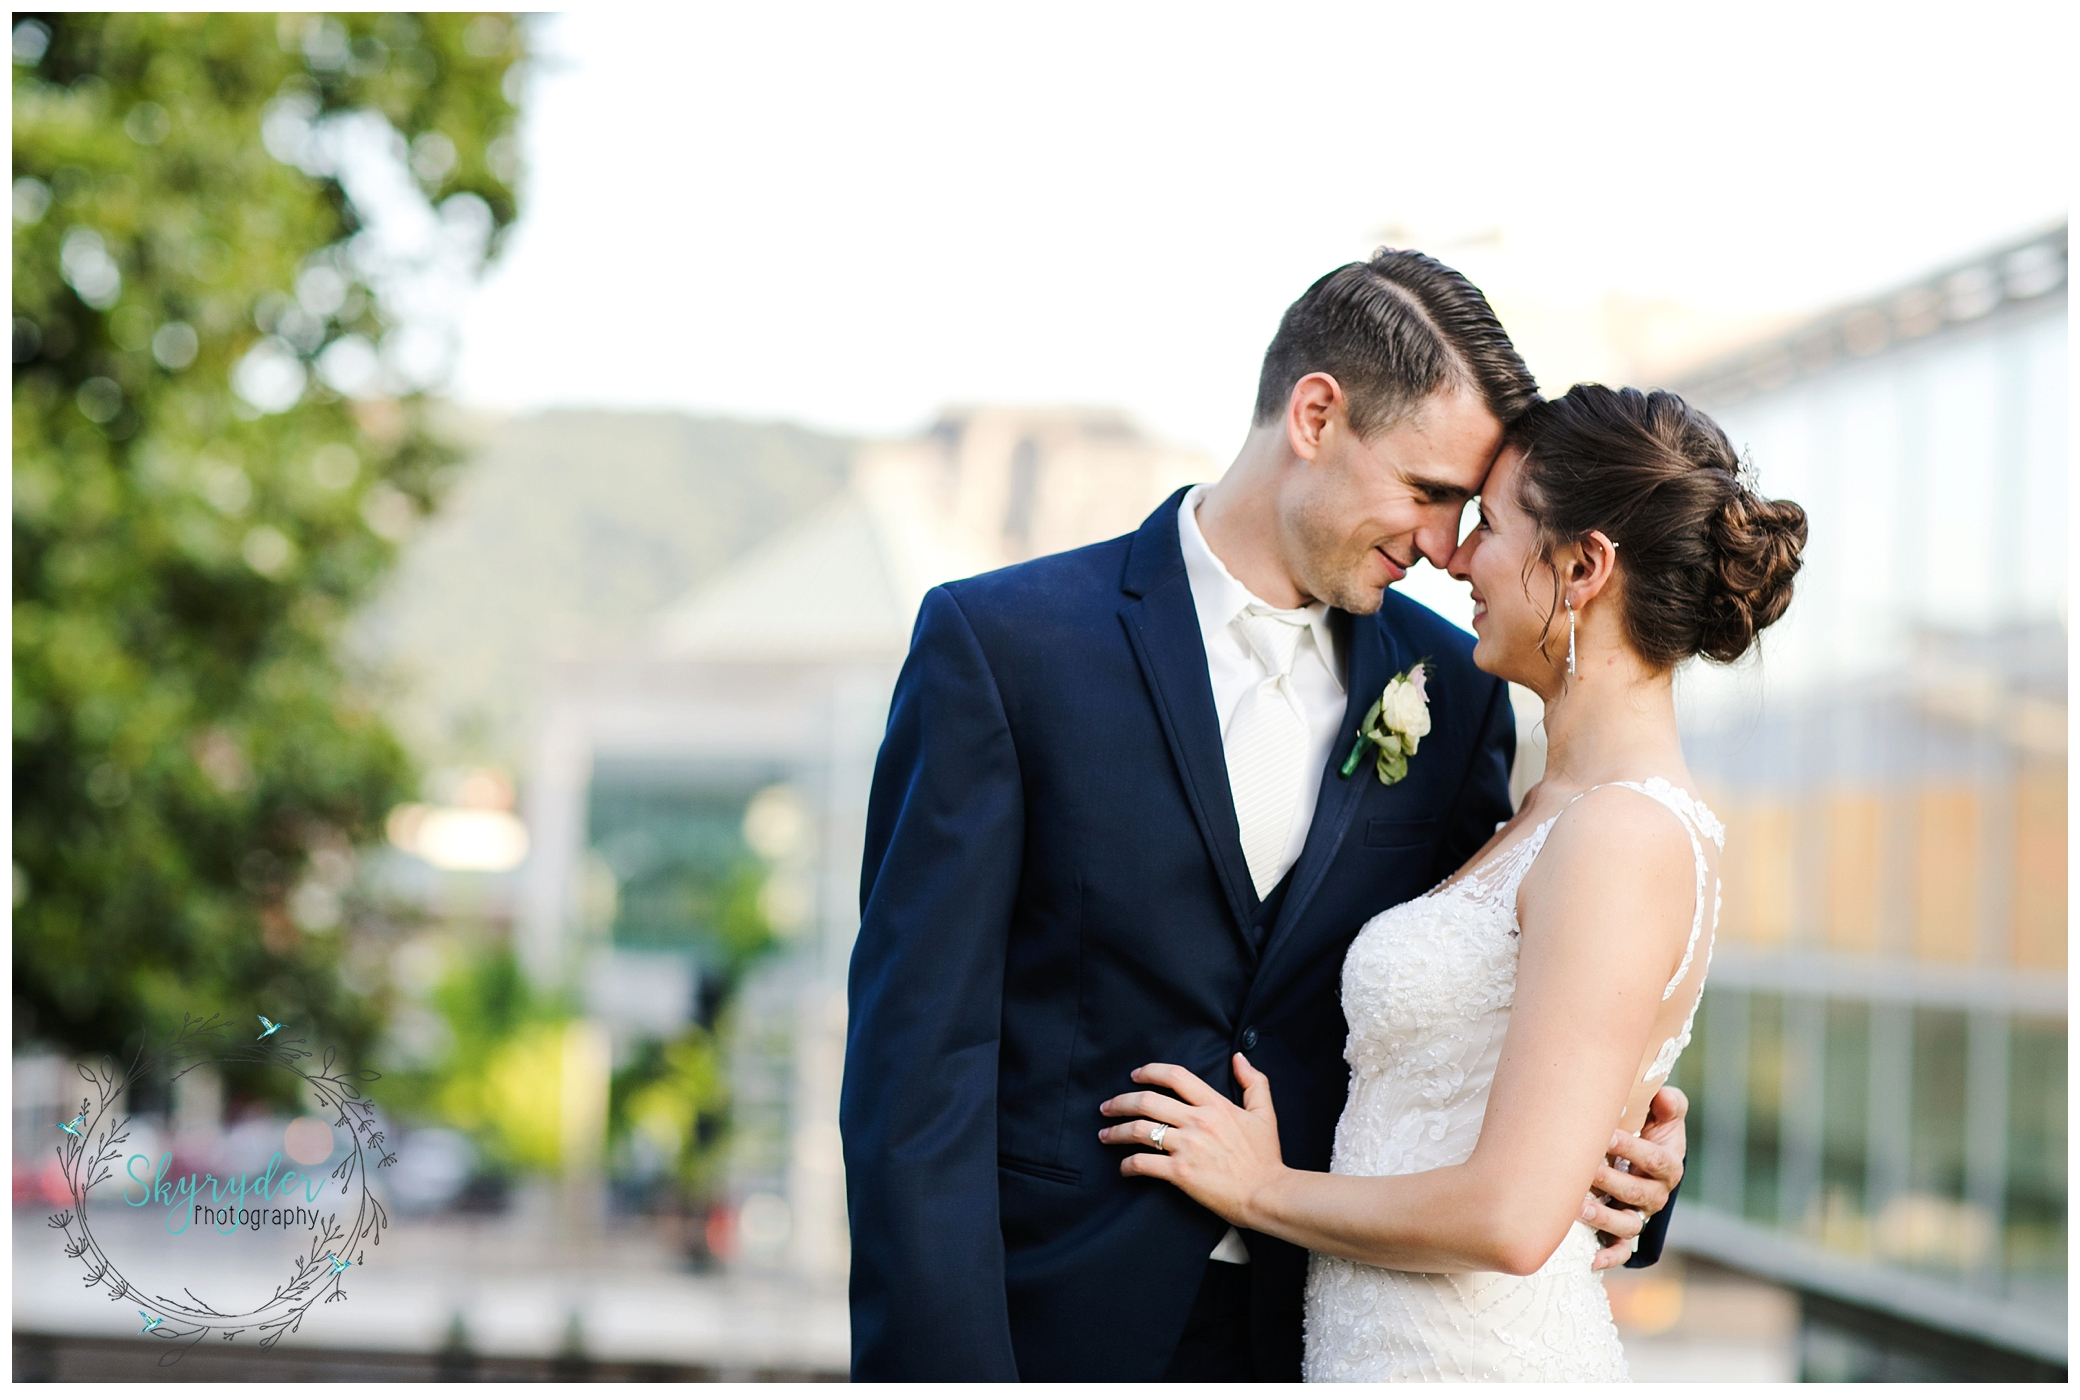 Jennifer + Todd | Roanoke Wedding Photographer | Hotel Roanoke Wedding